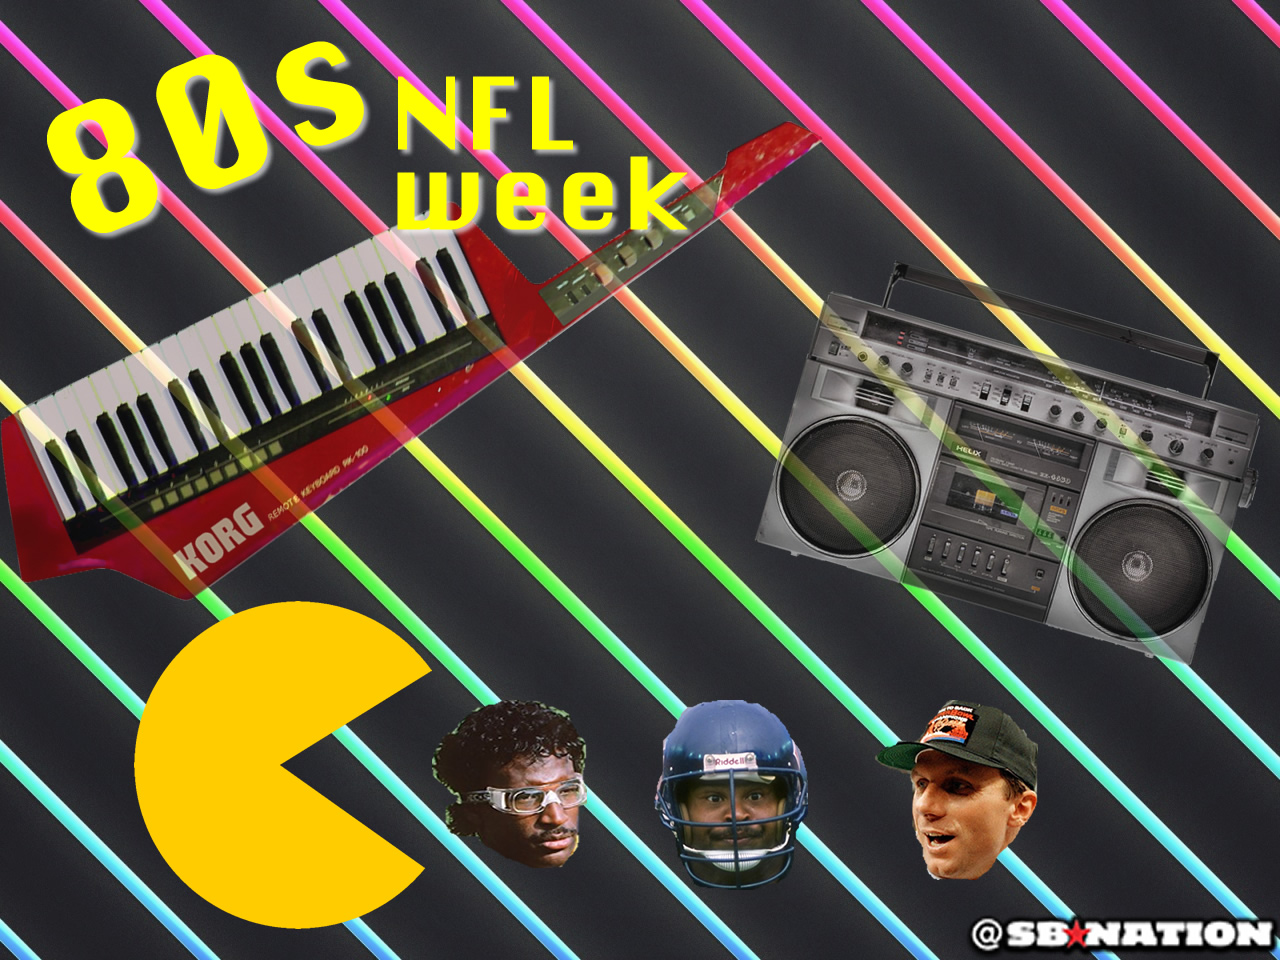 80snflweeksbnation_medium